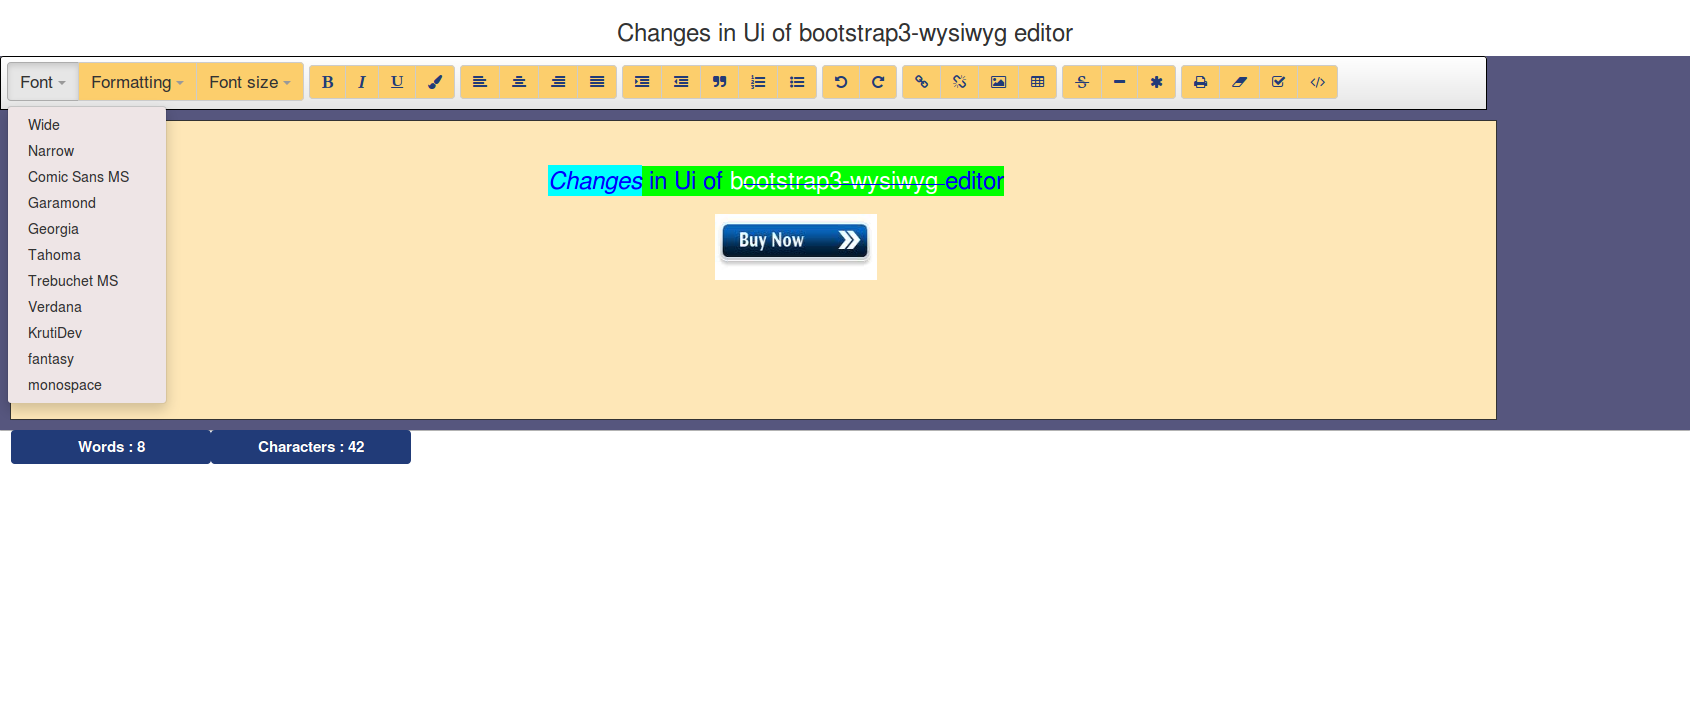 How can i change ui and attributes of bootstrap3-wysiwyg editor